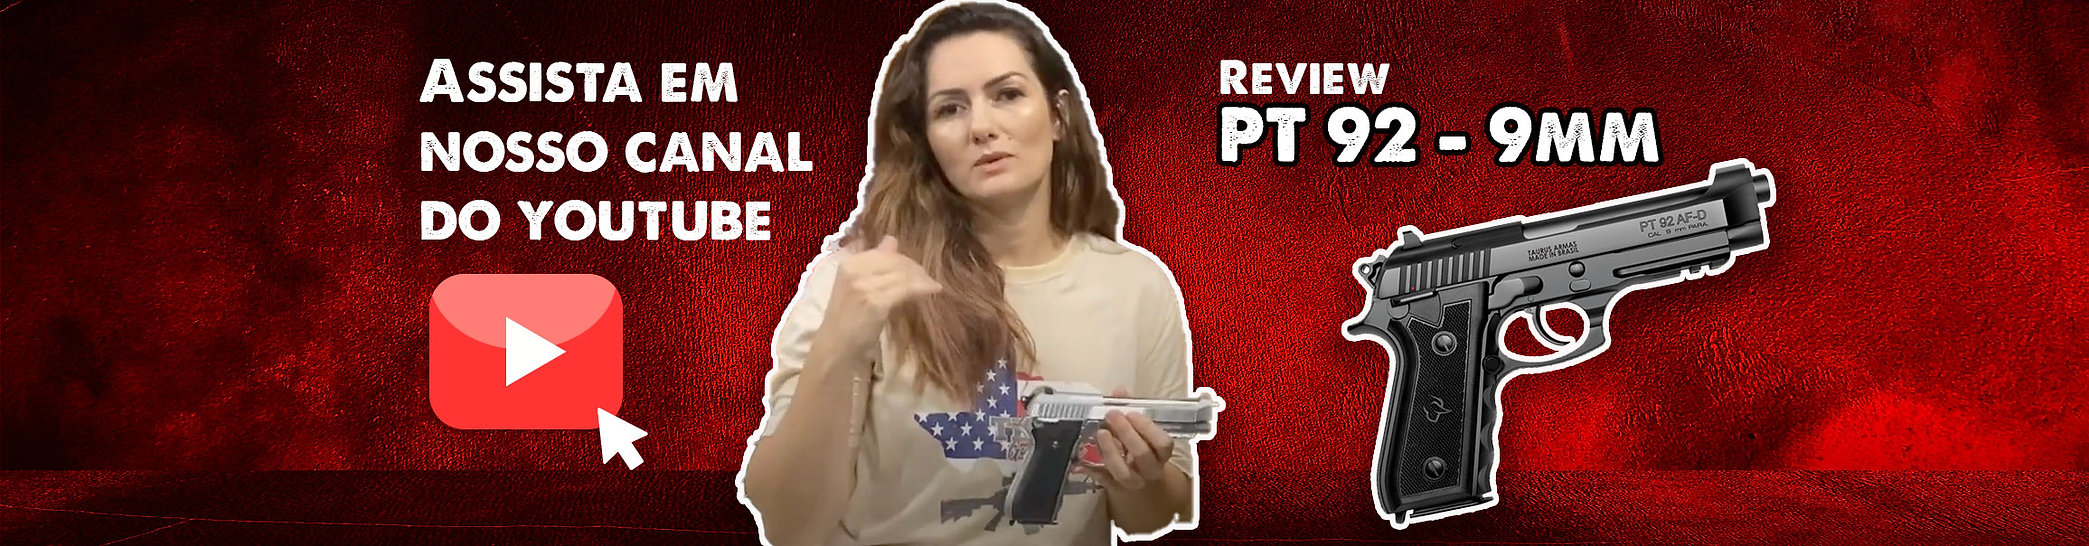 Review PT 92 - 9mm